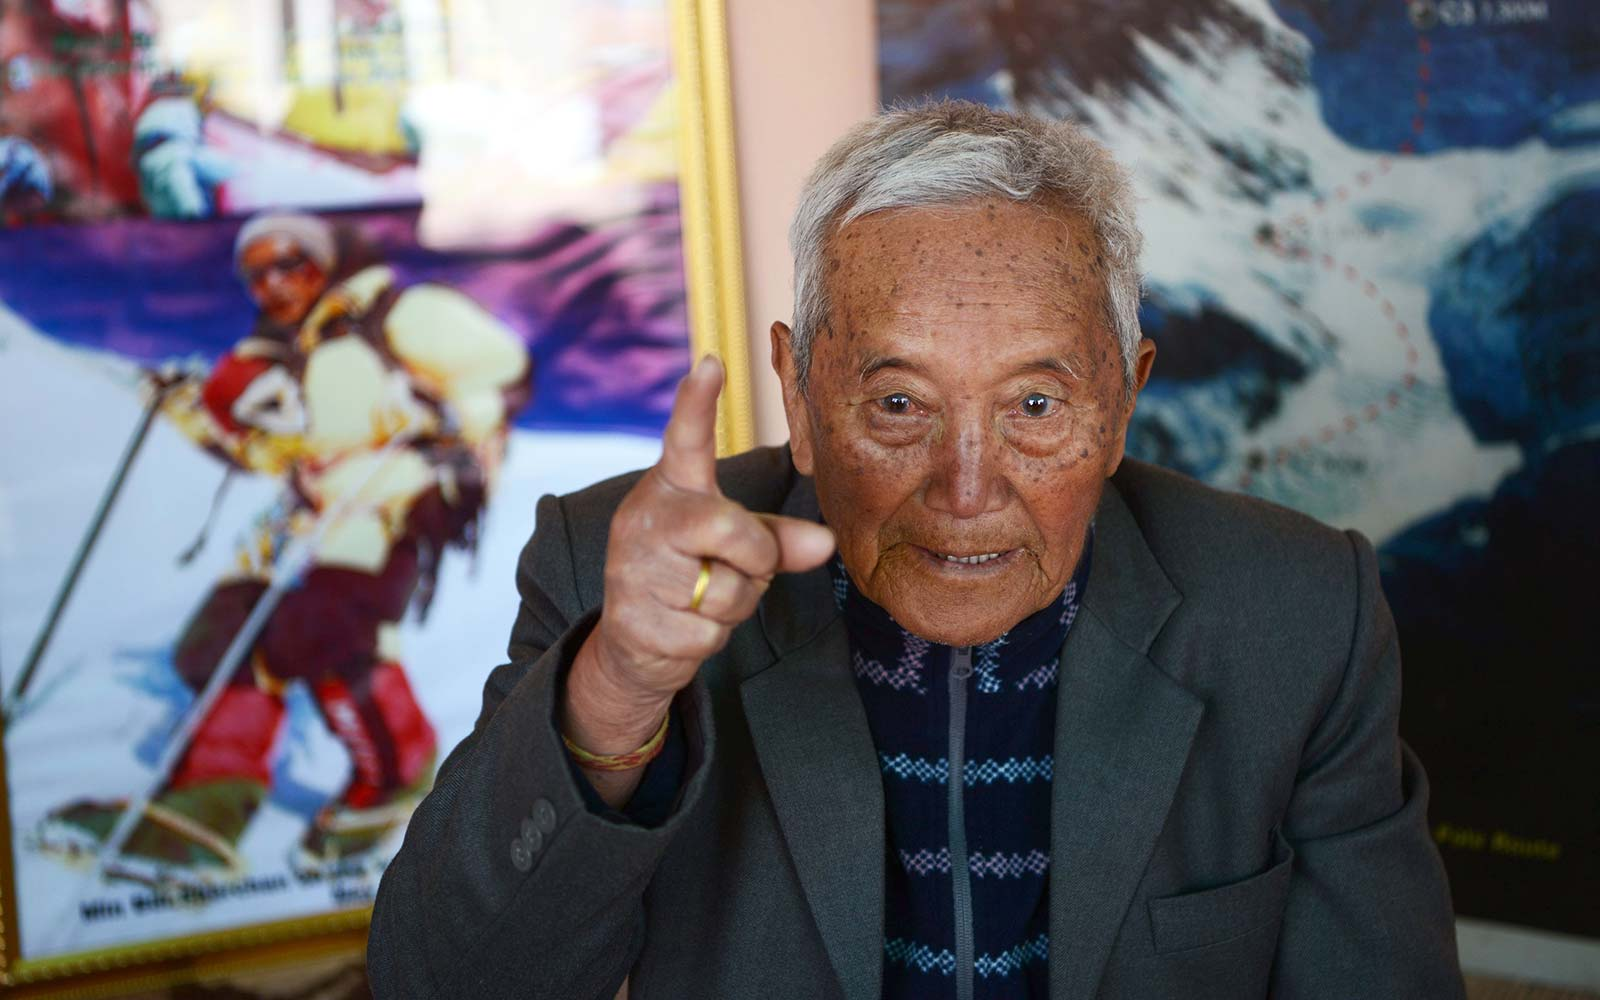 85-year-old trying to break Everest record again